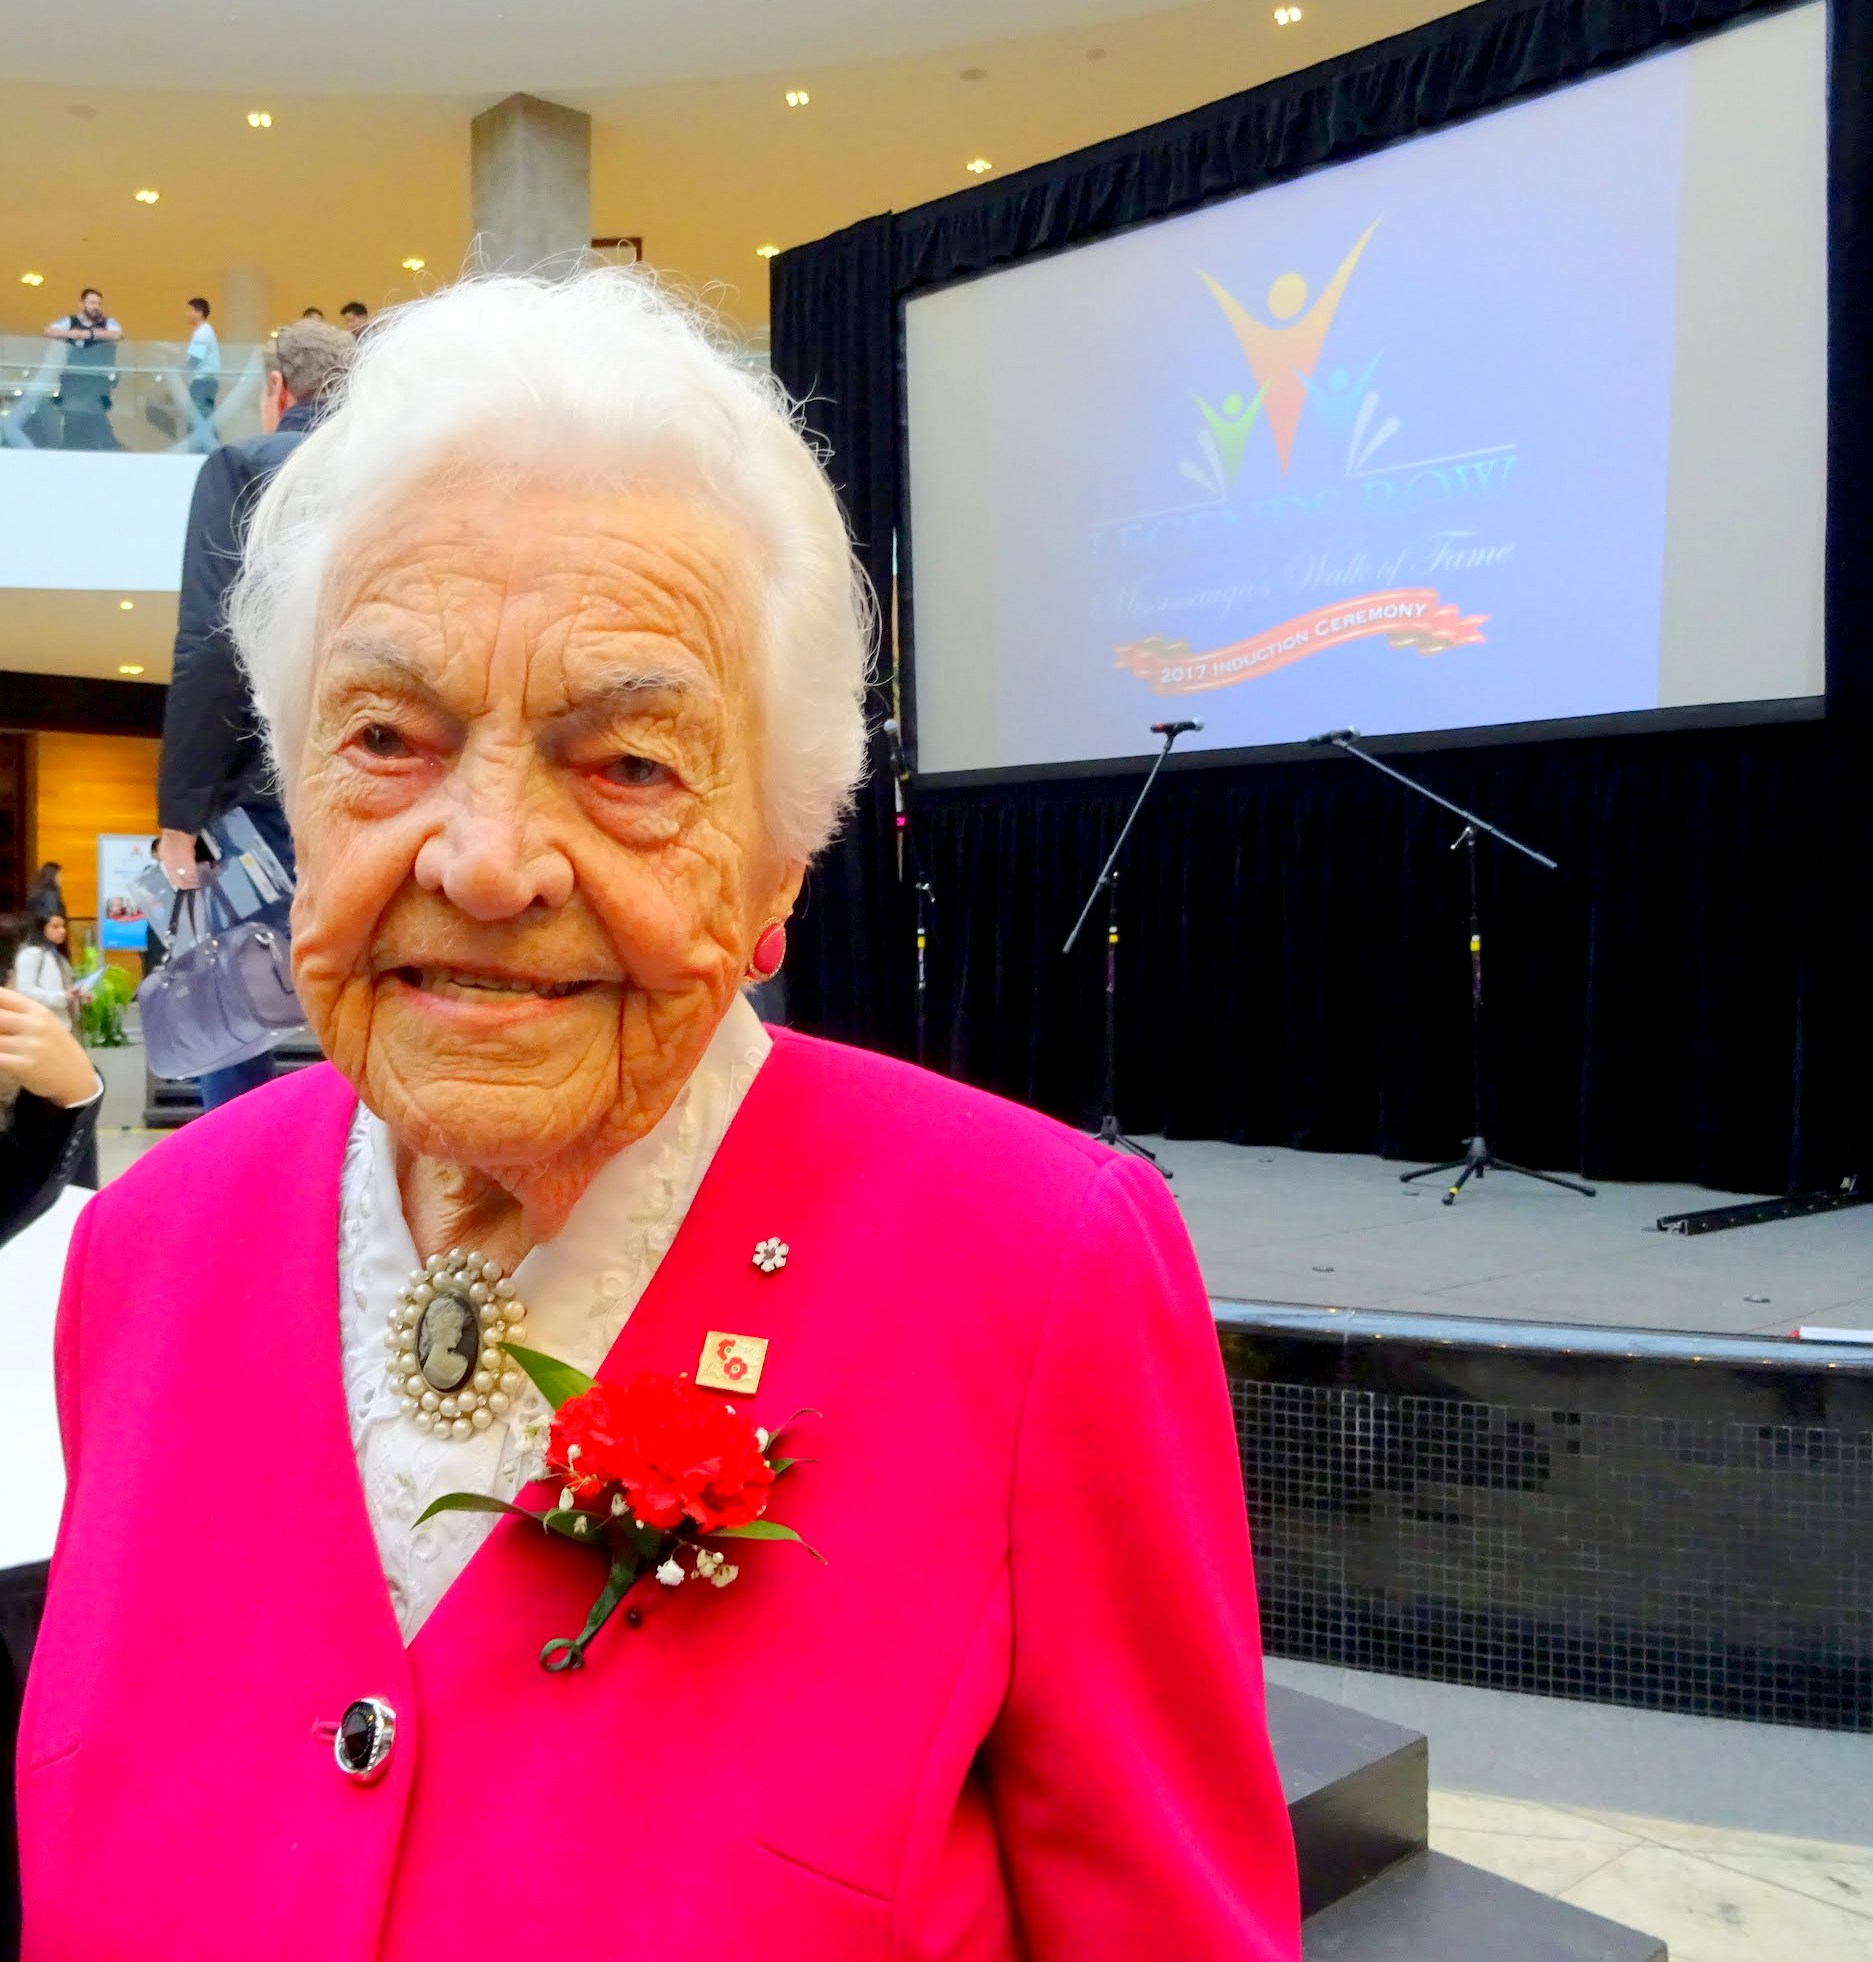 Legend Hazel McCallion photo by I Lee at Legends Row: Mississauga's Walk of Fame Induction Ceremony, Erin Mills Town Centre, 4 Nov 2017